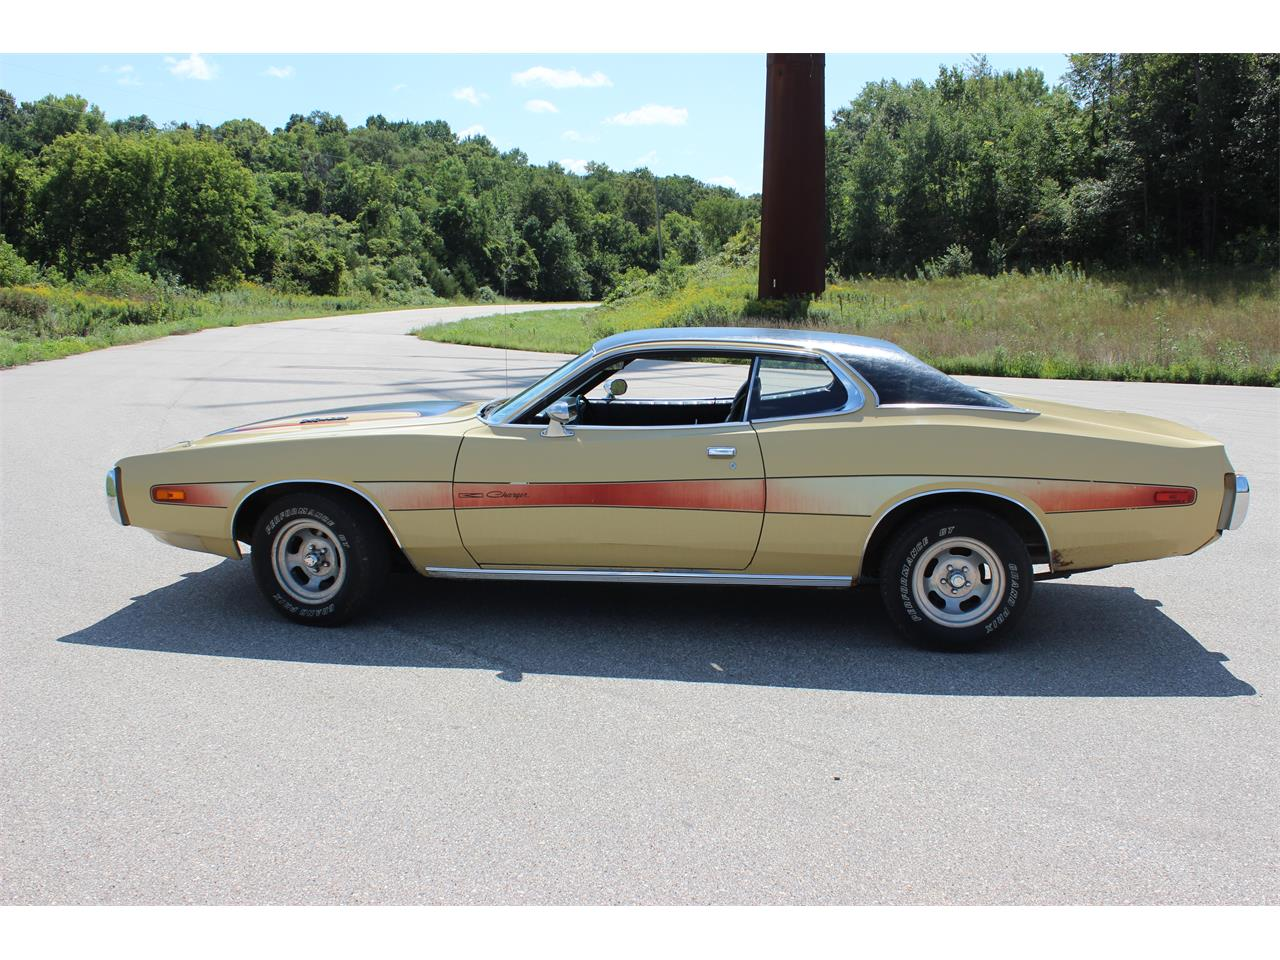 1973 Dodge Charger (CC-1074465) for sale in Oronoco, Minnesota